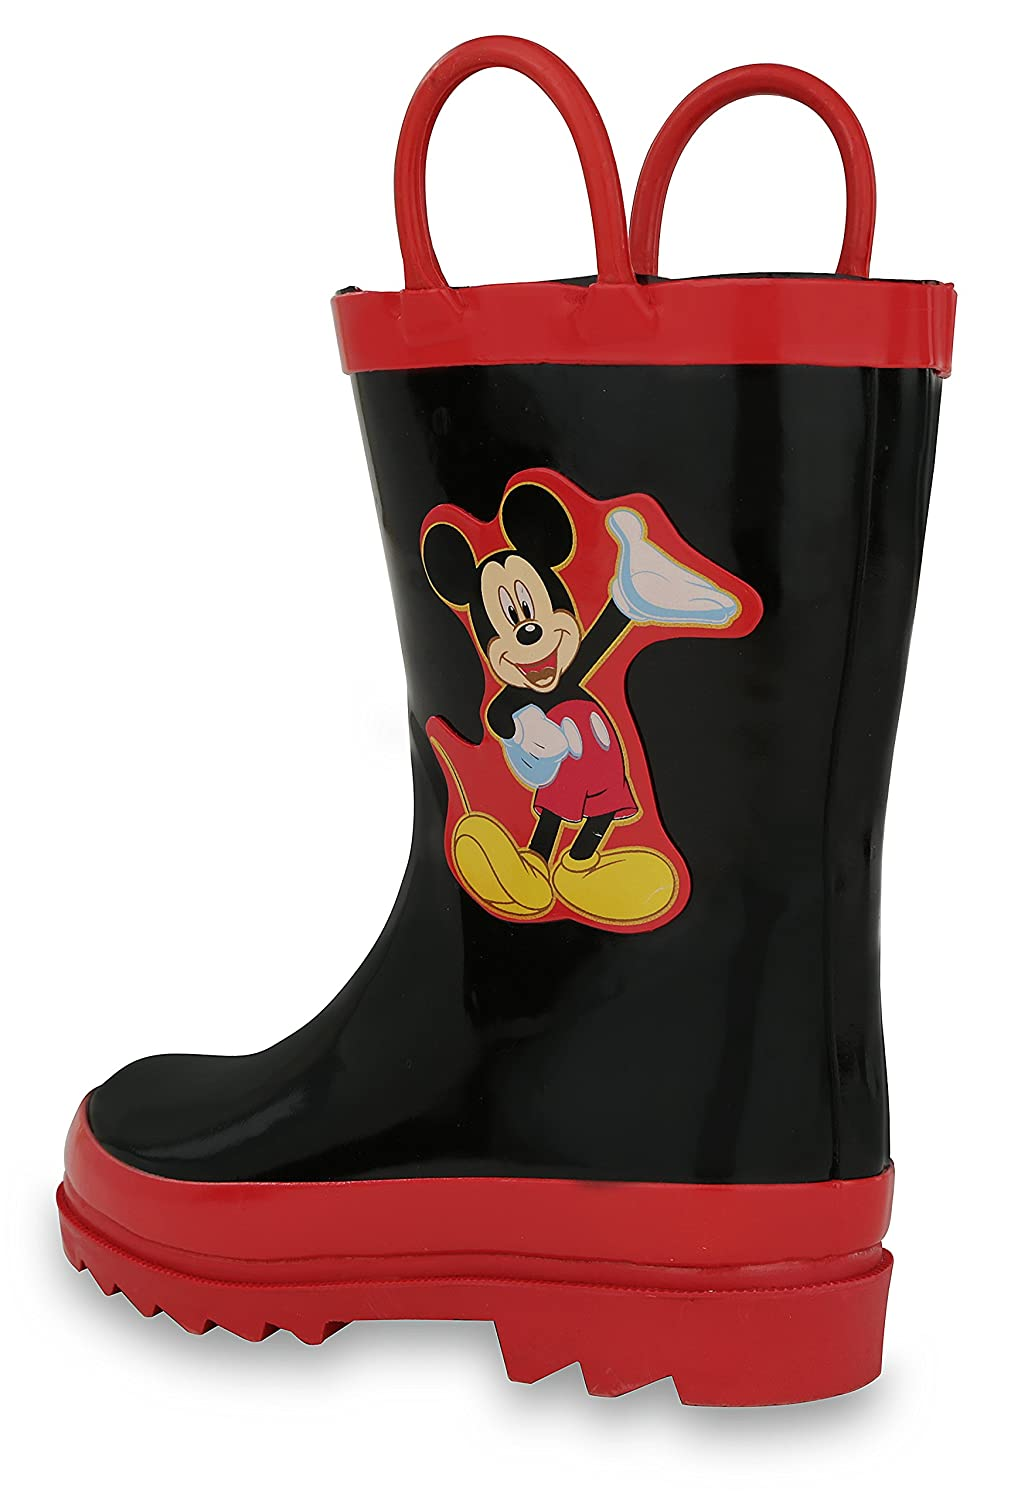 Disney Mickey Mouse Toddler Little Image 3